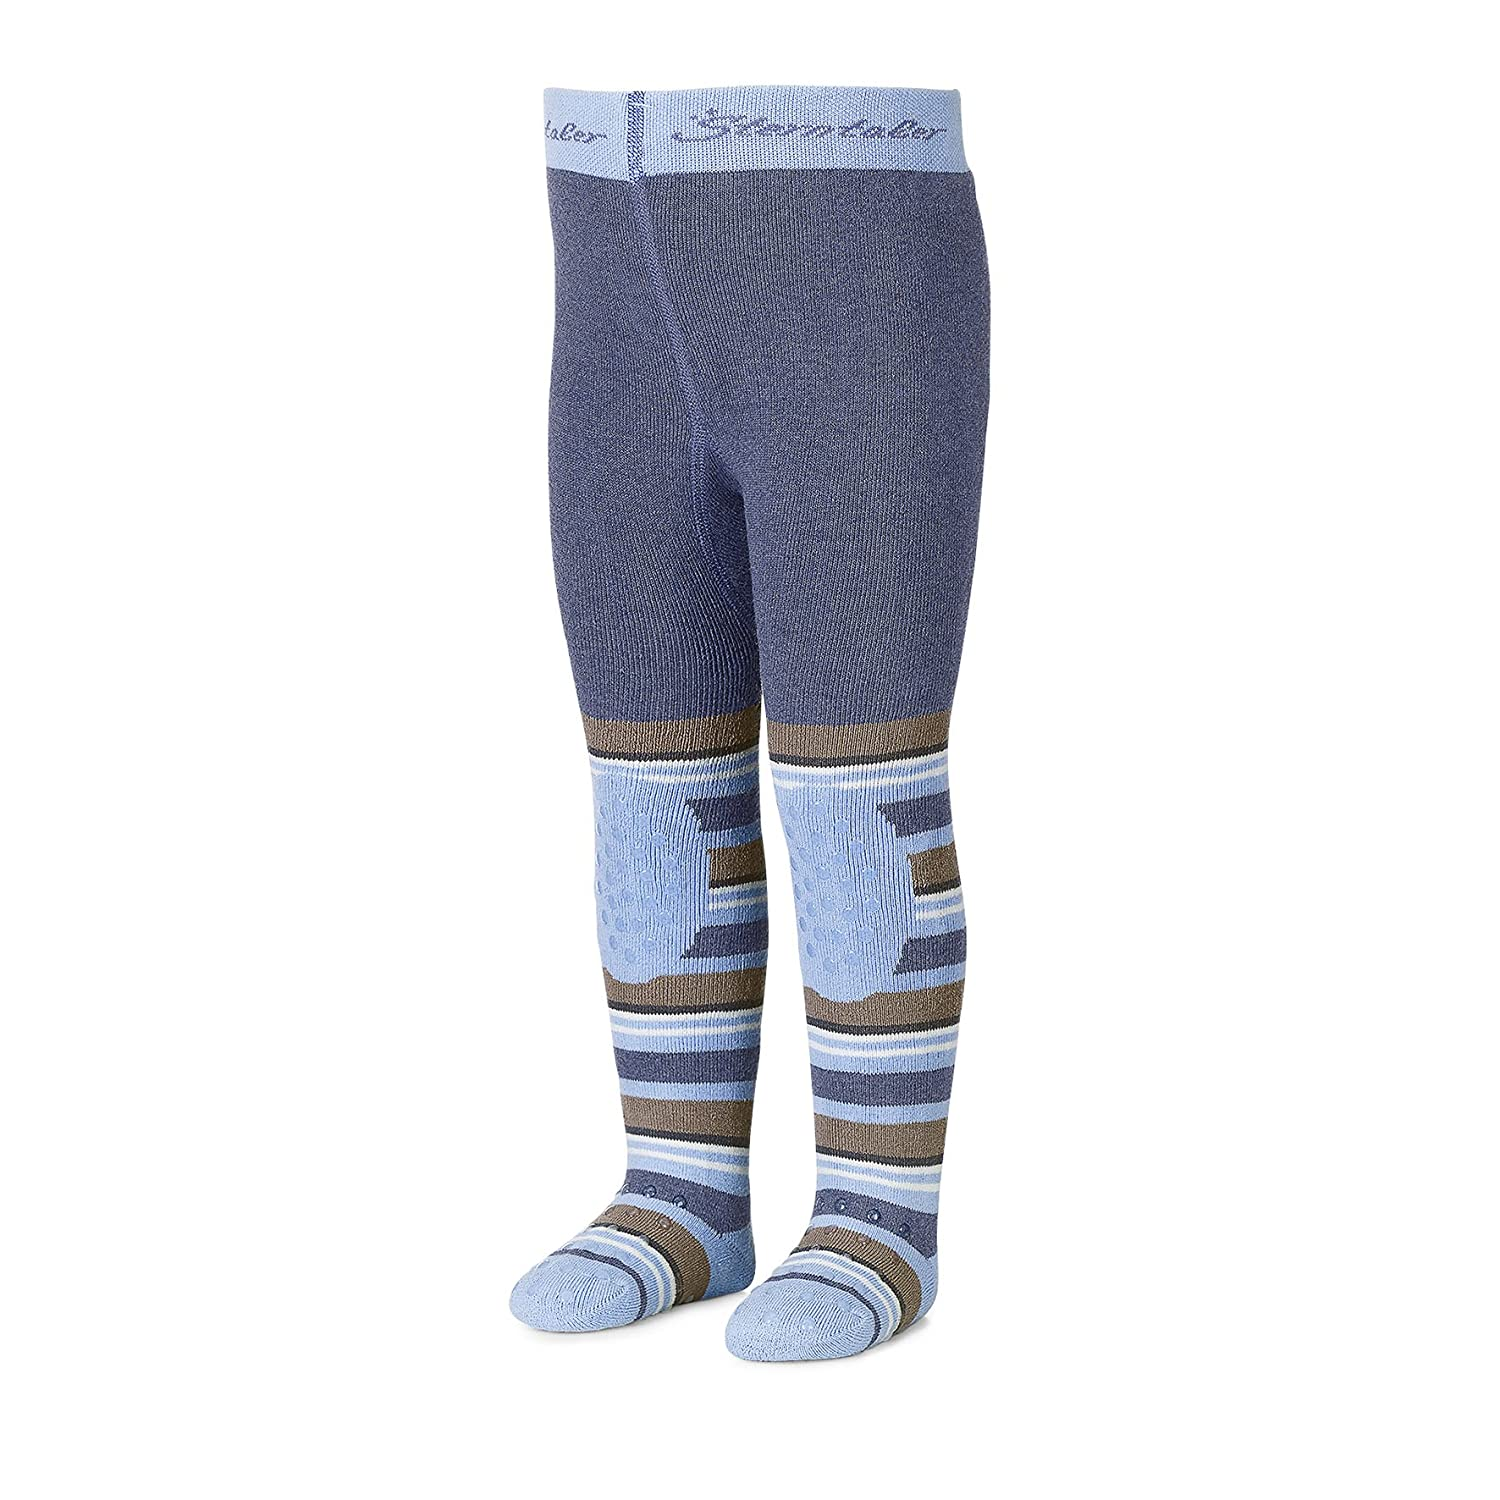 Sterntaler - Young tights Thermal tights toddler tights with Po motif from Sterntaler, medium blue - 8751703mb